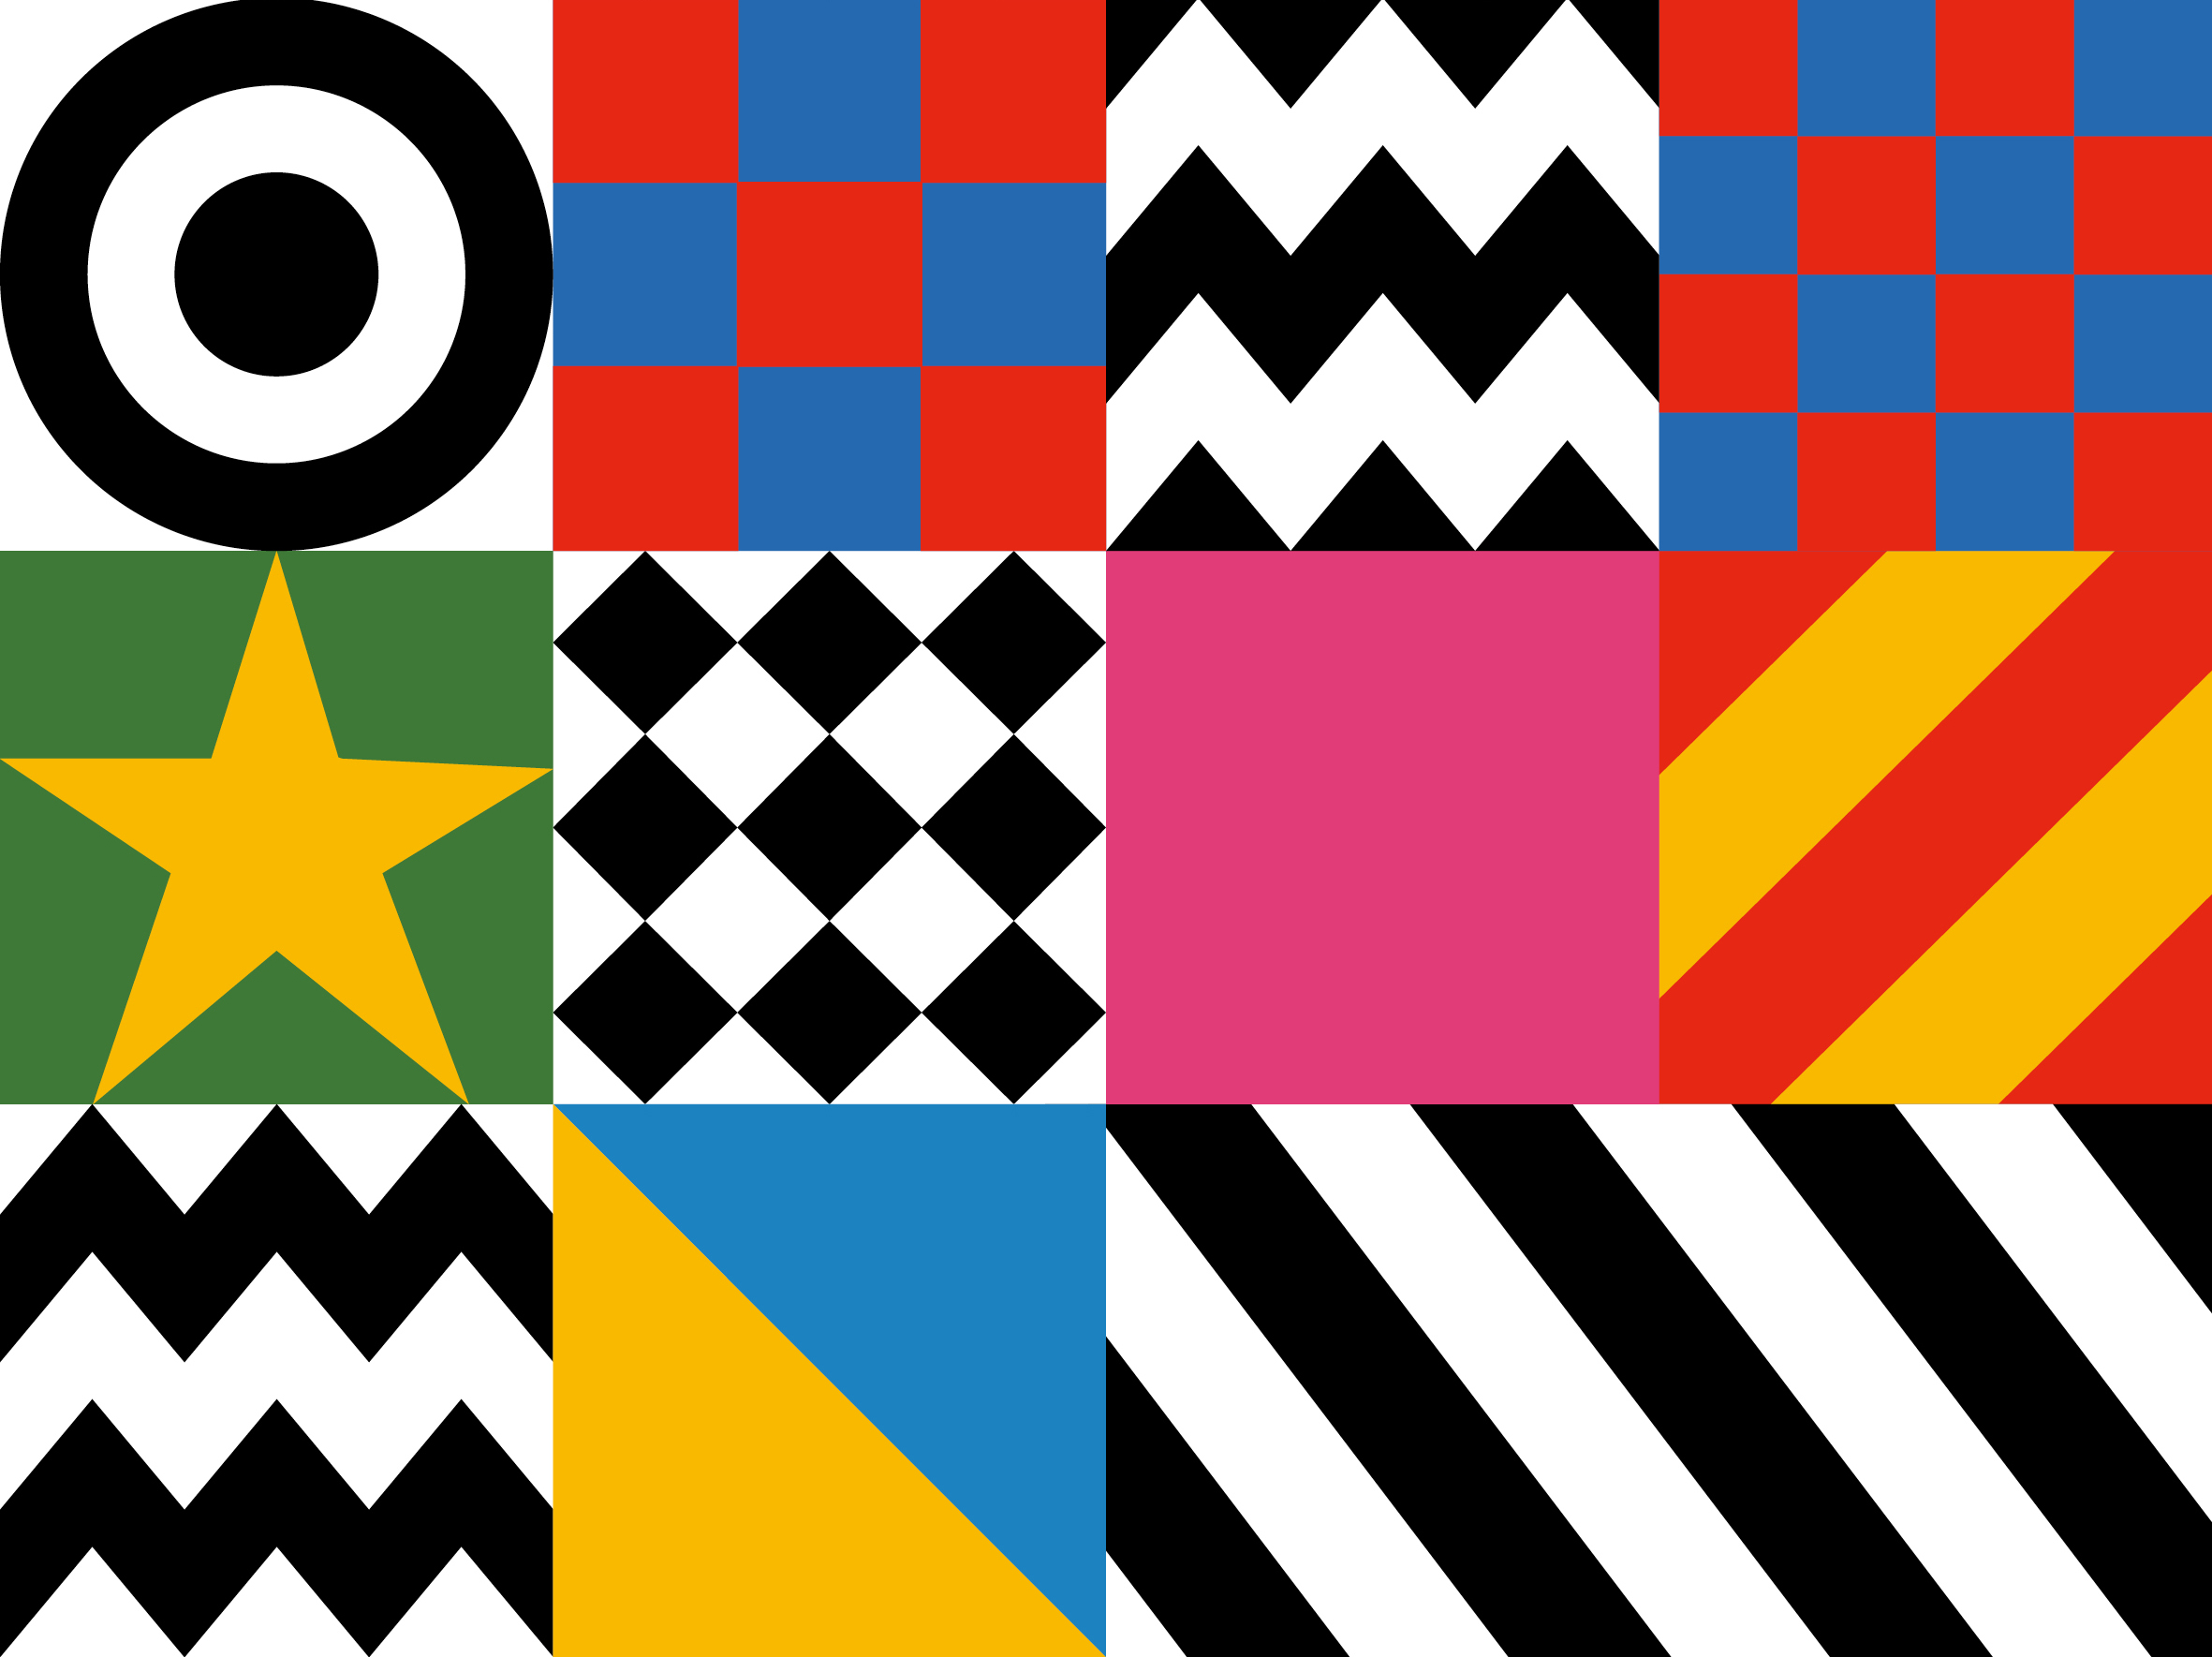 Design motifs from Sir Peter Blake's Everybody Razzle Dazzle, 2015